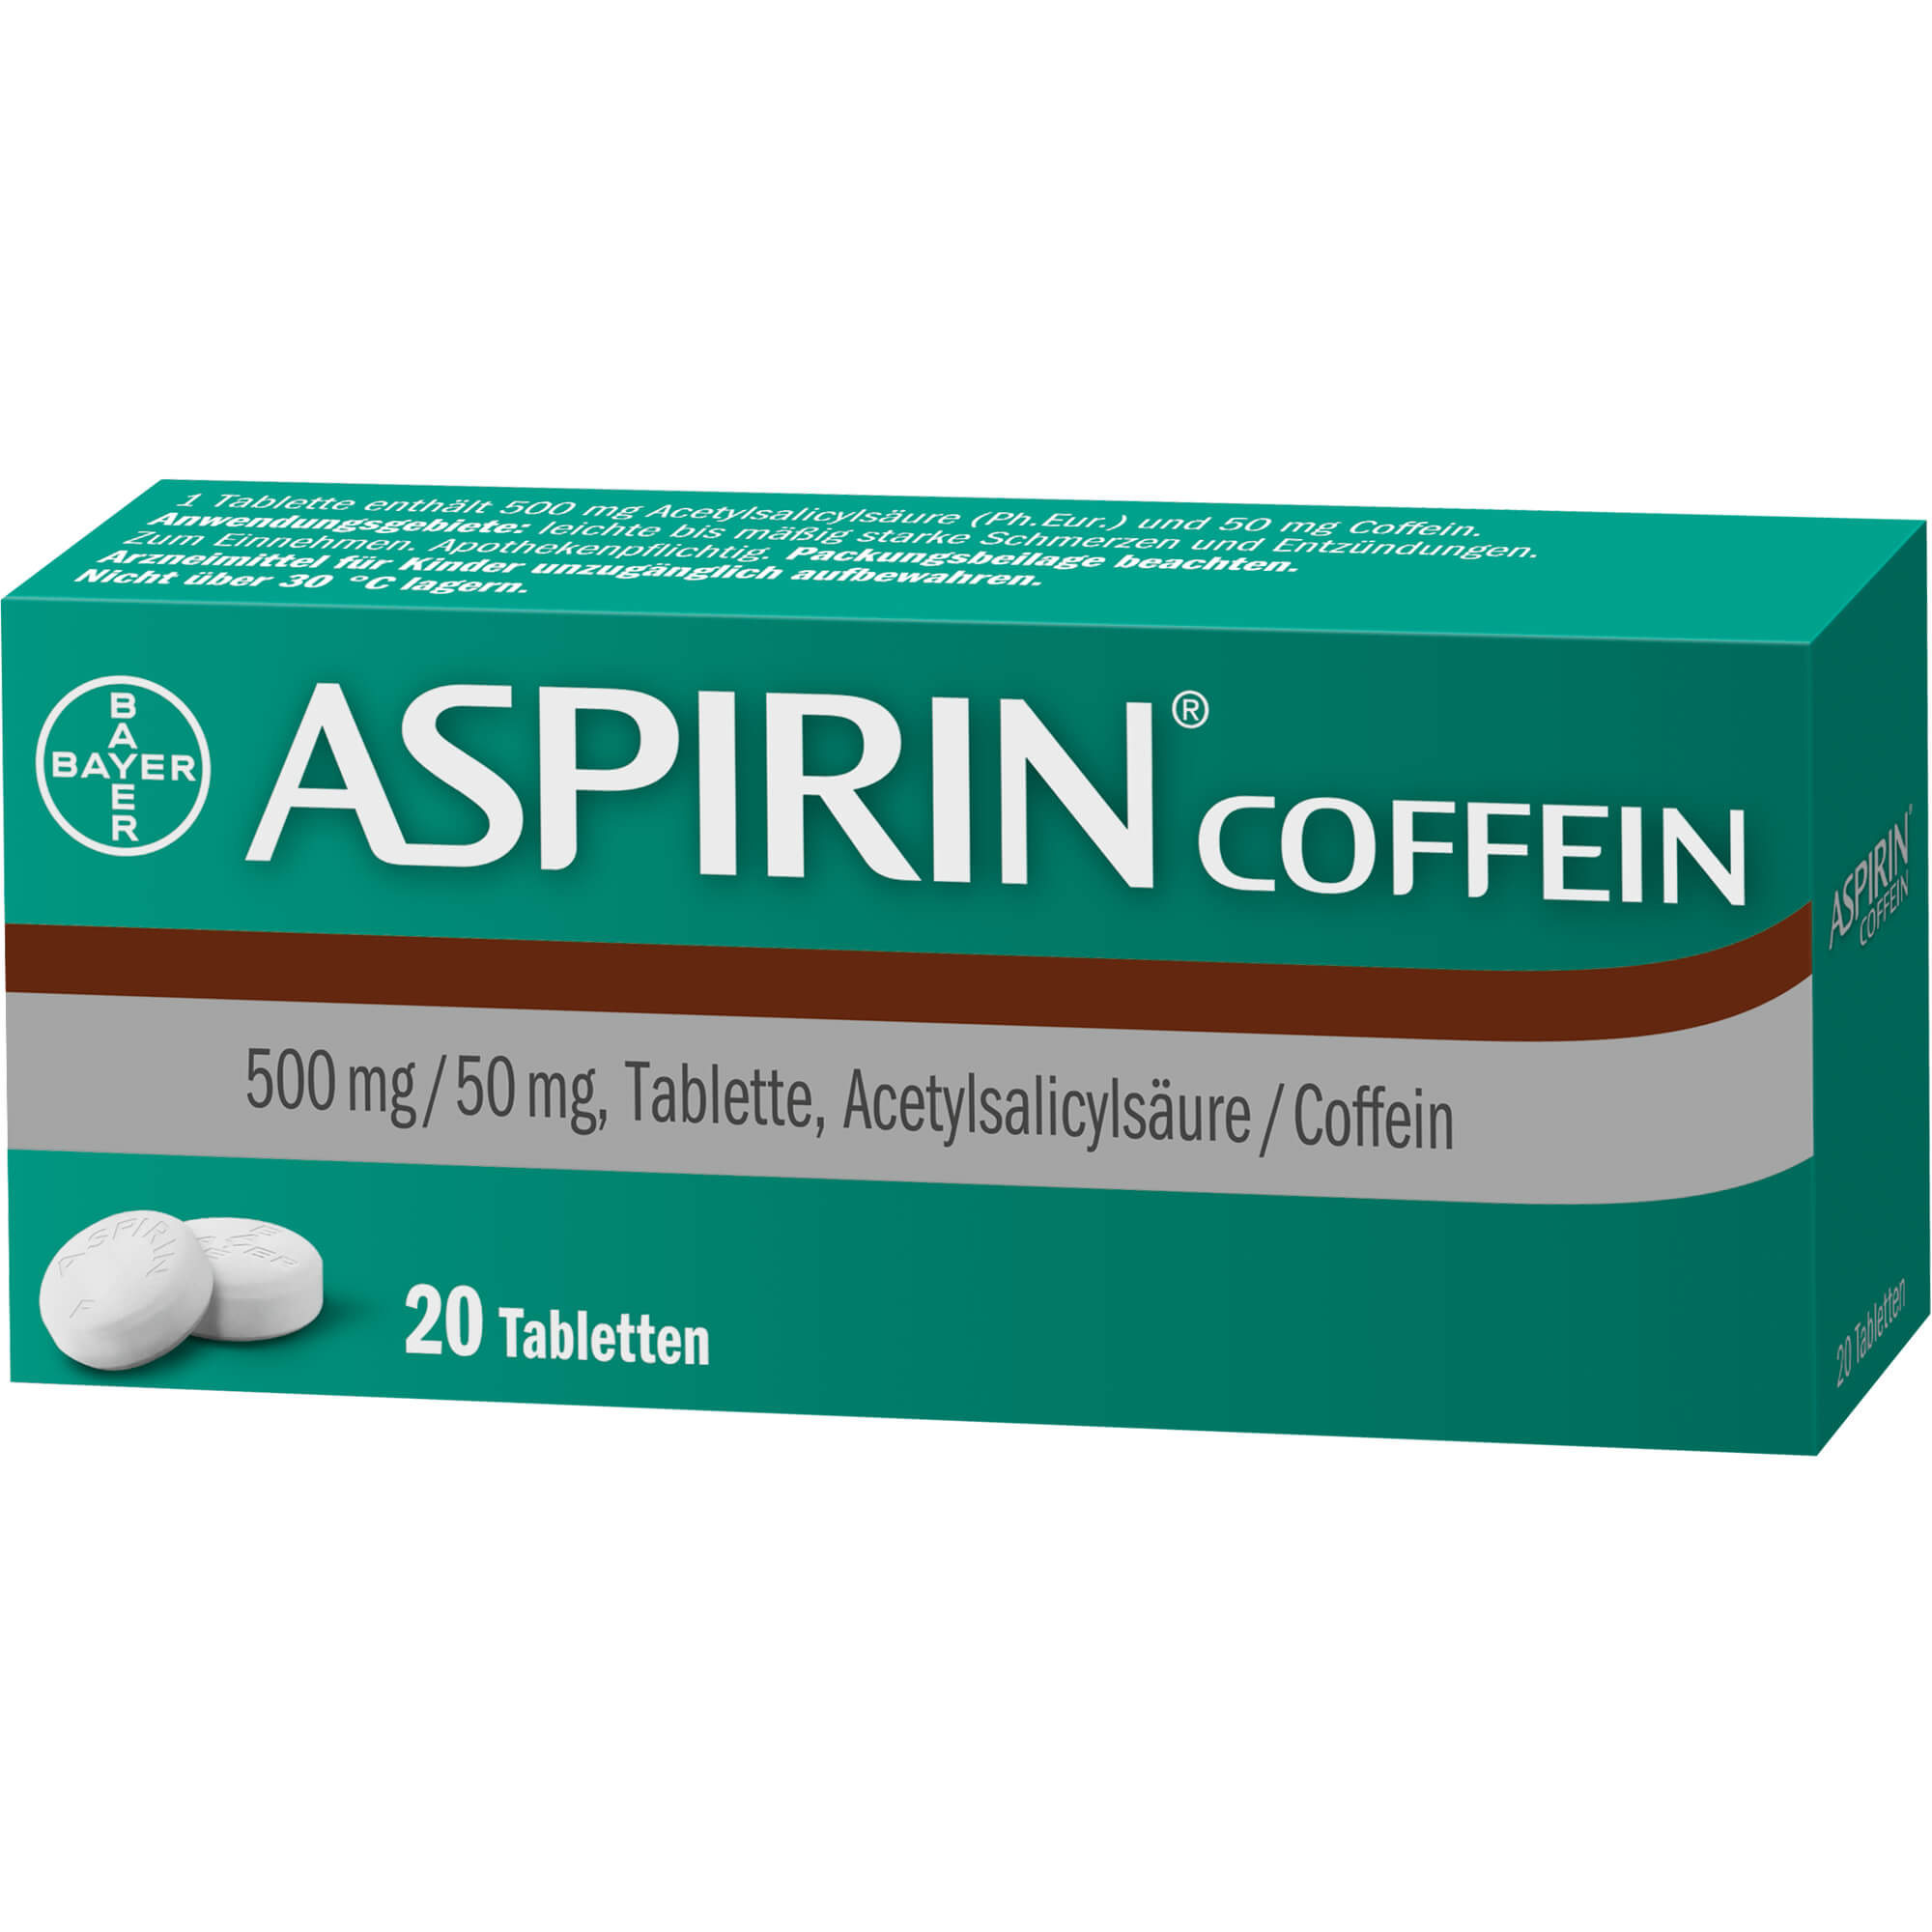 ASPIRIN Coffein Tabletten